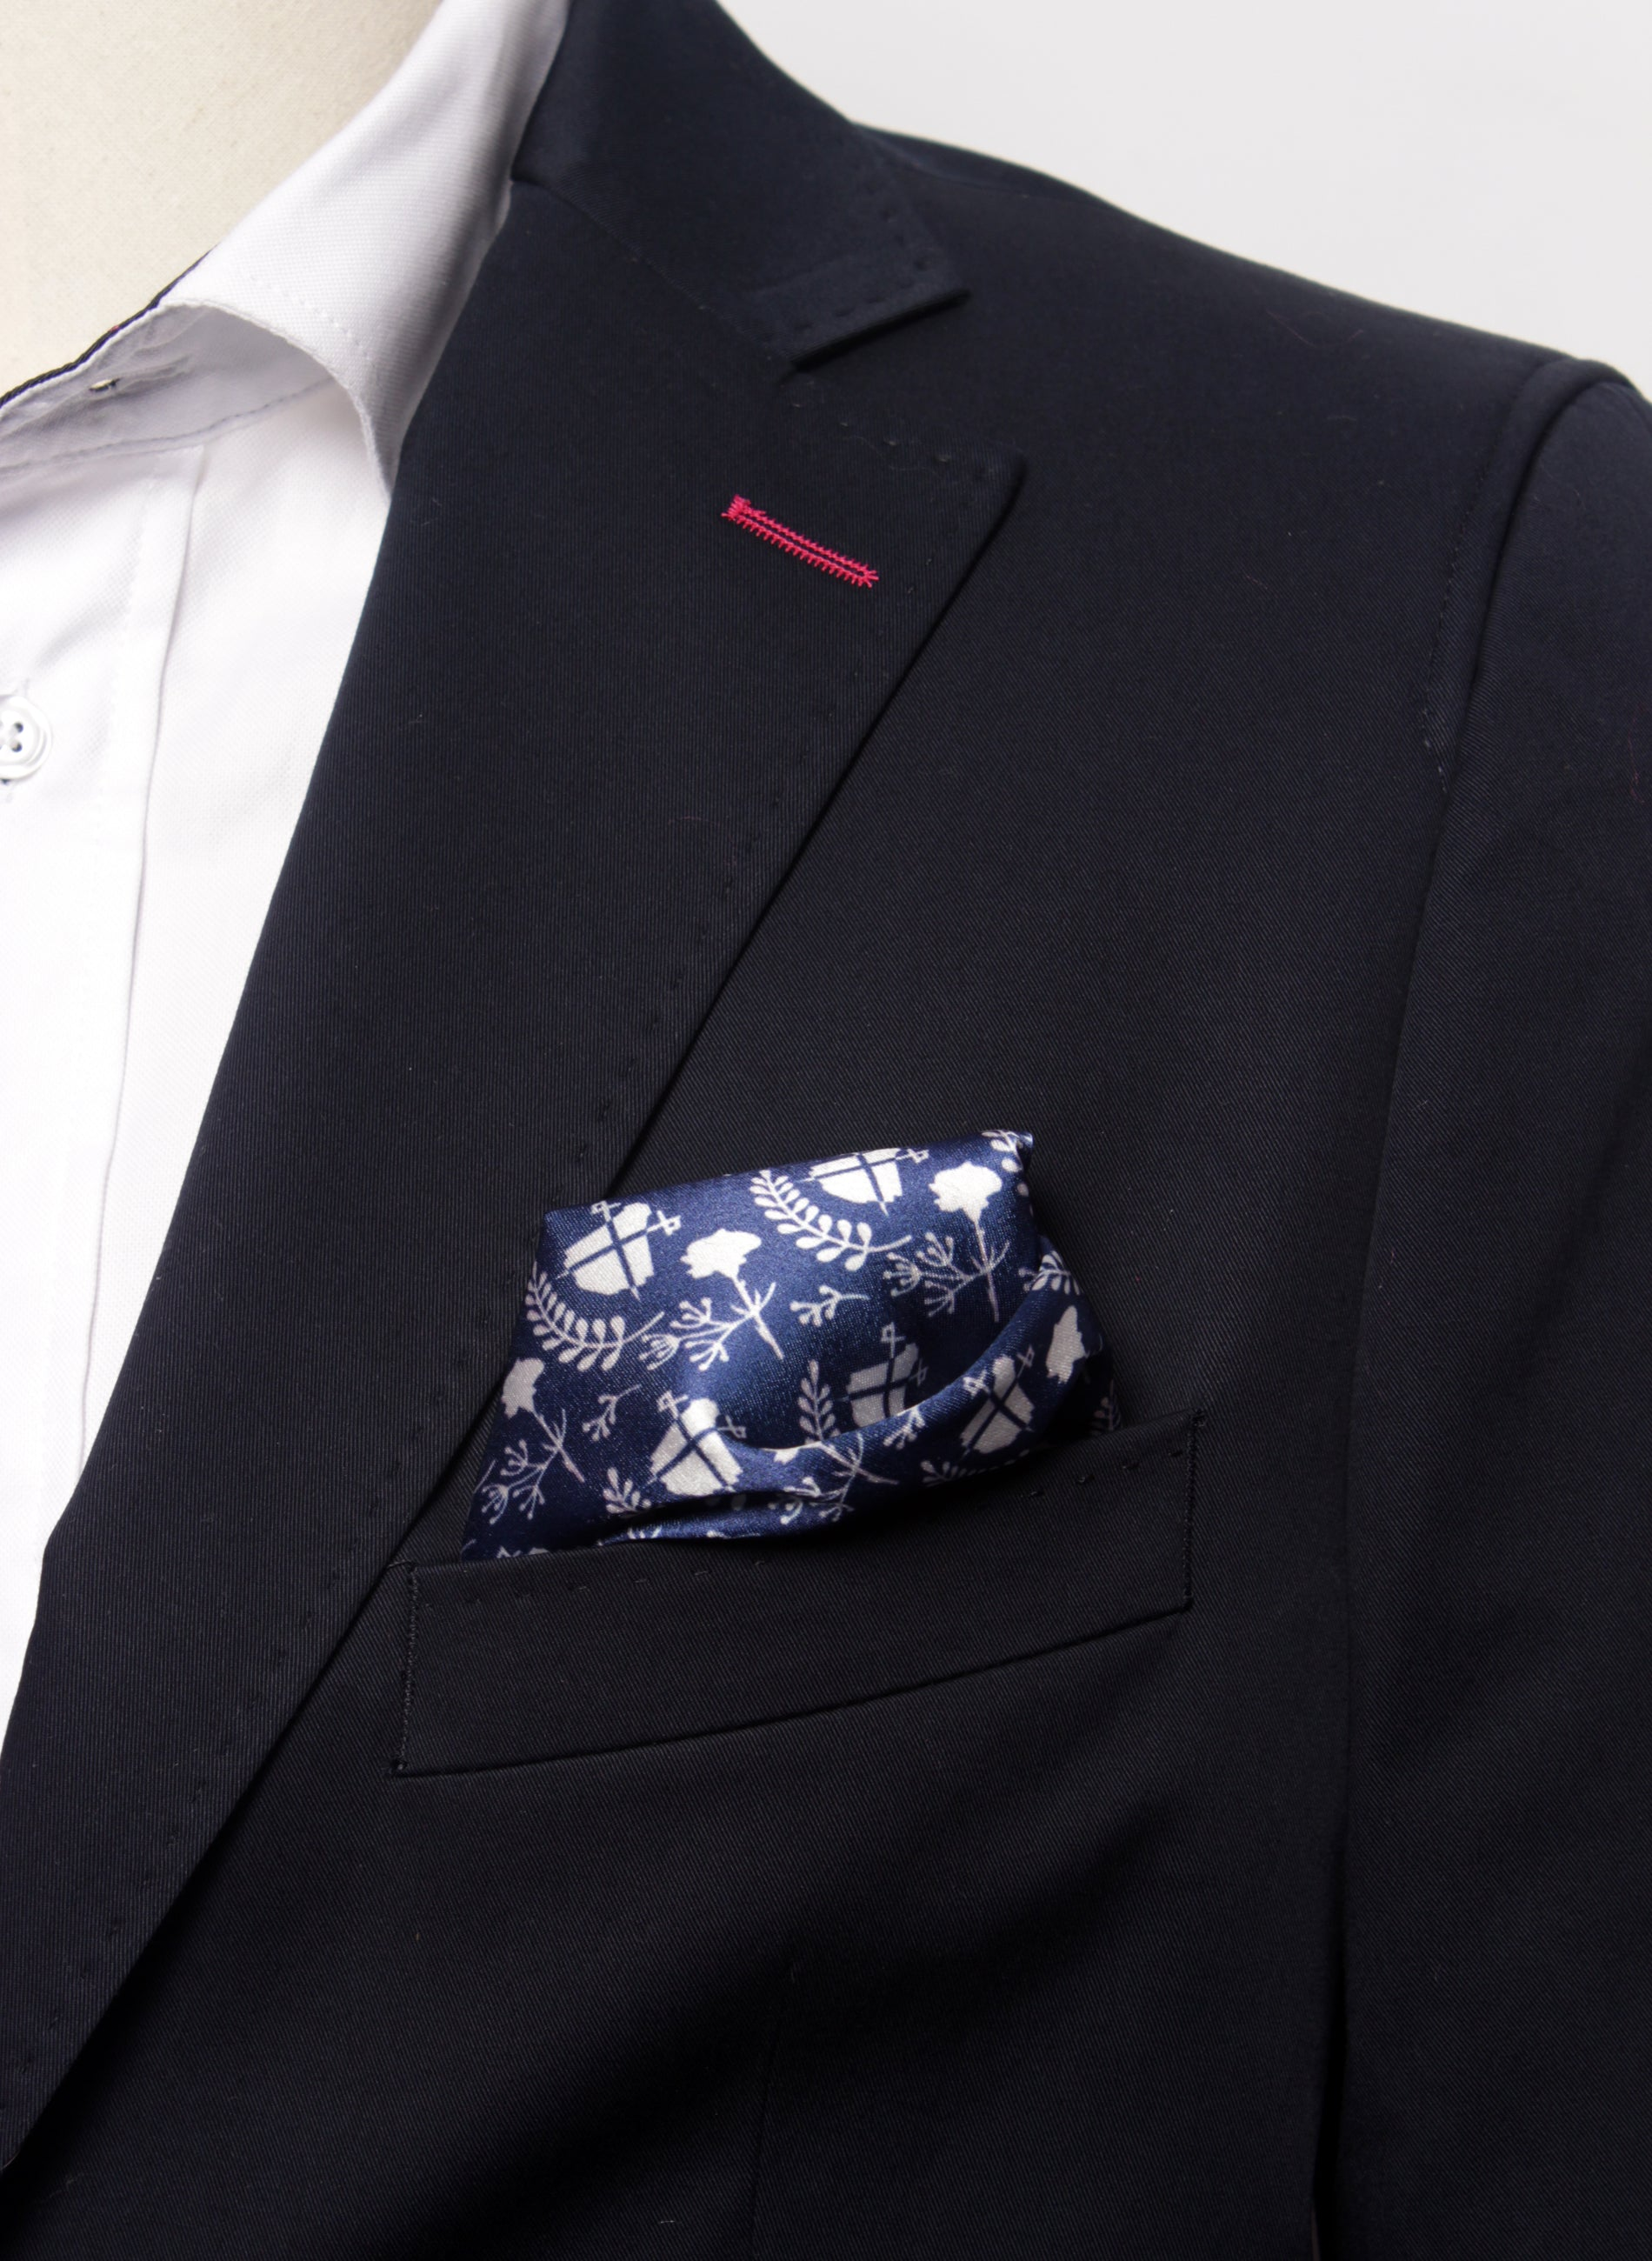 Zakdoek Pocket Navy Blue Logos Blancos